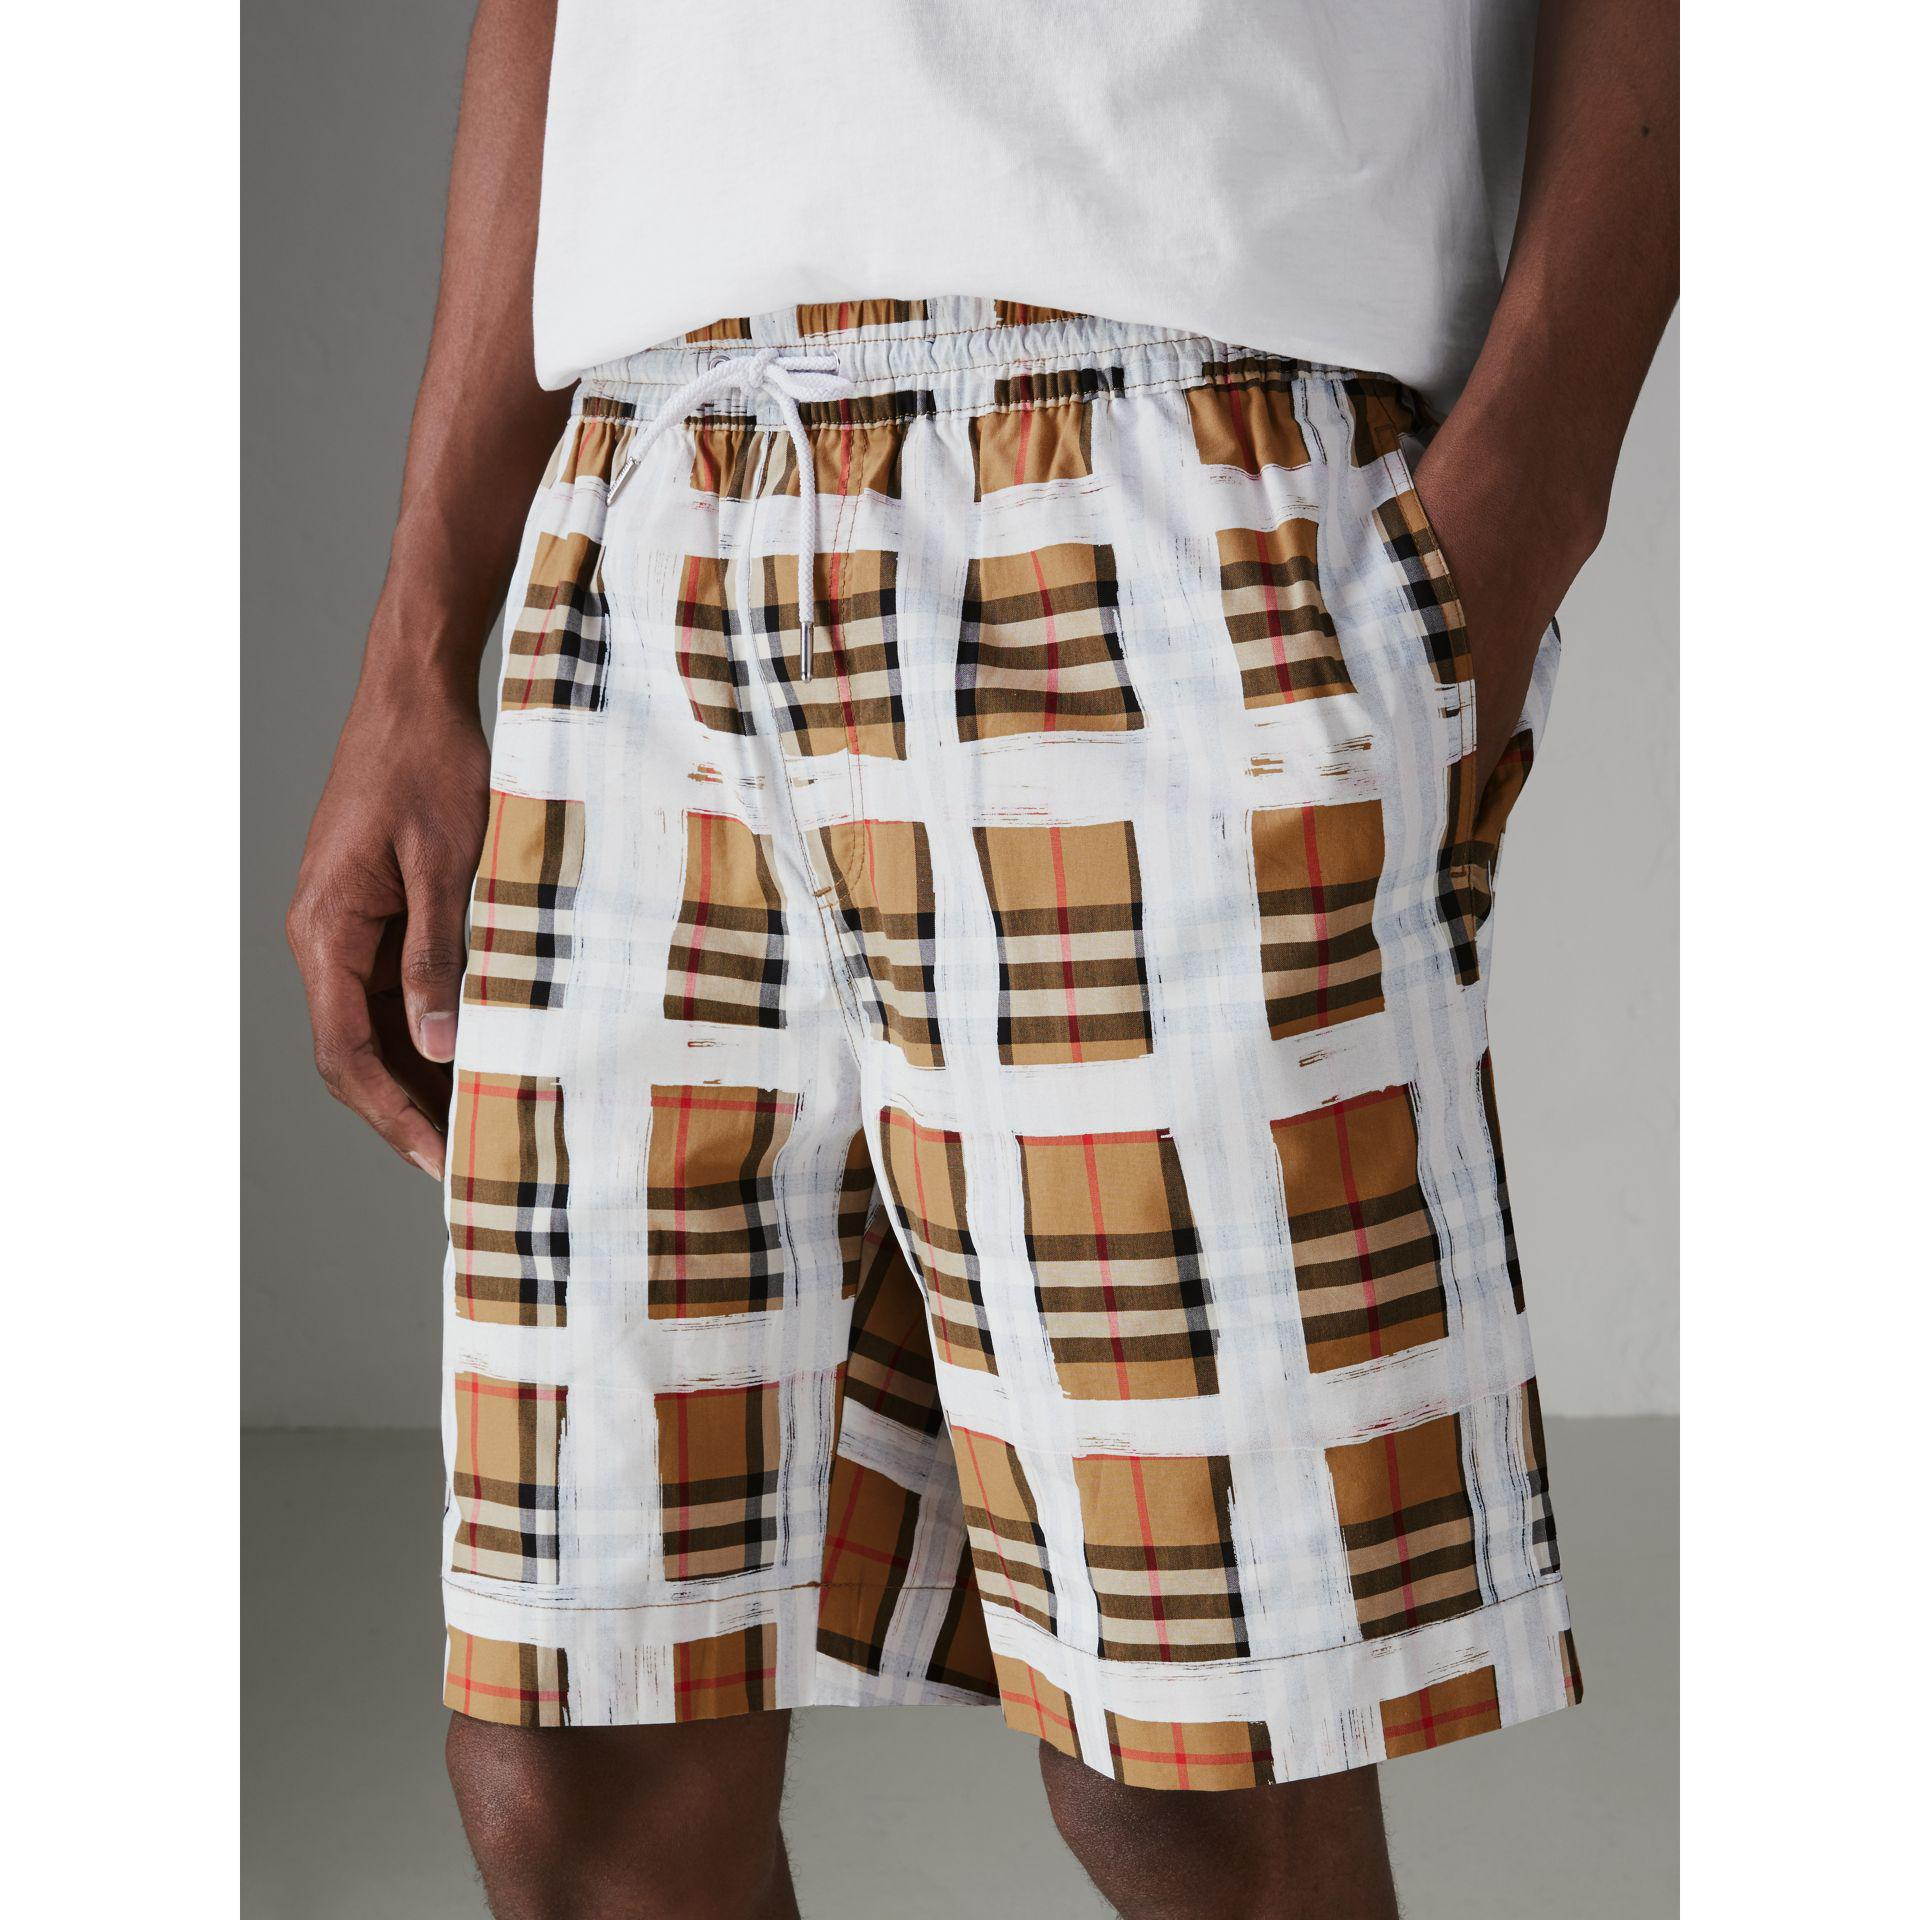 918c02e2775f Burberry Painted Vintage Check Cotton Drawcord Shorts for Men - Lyst